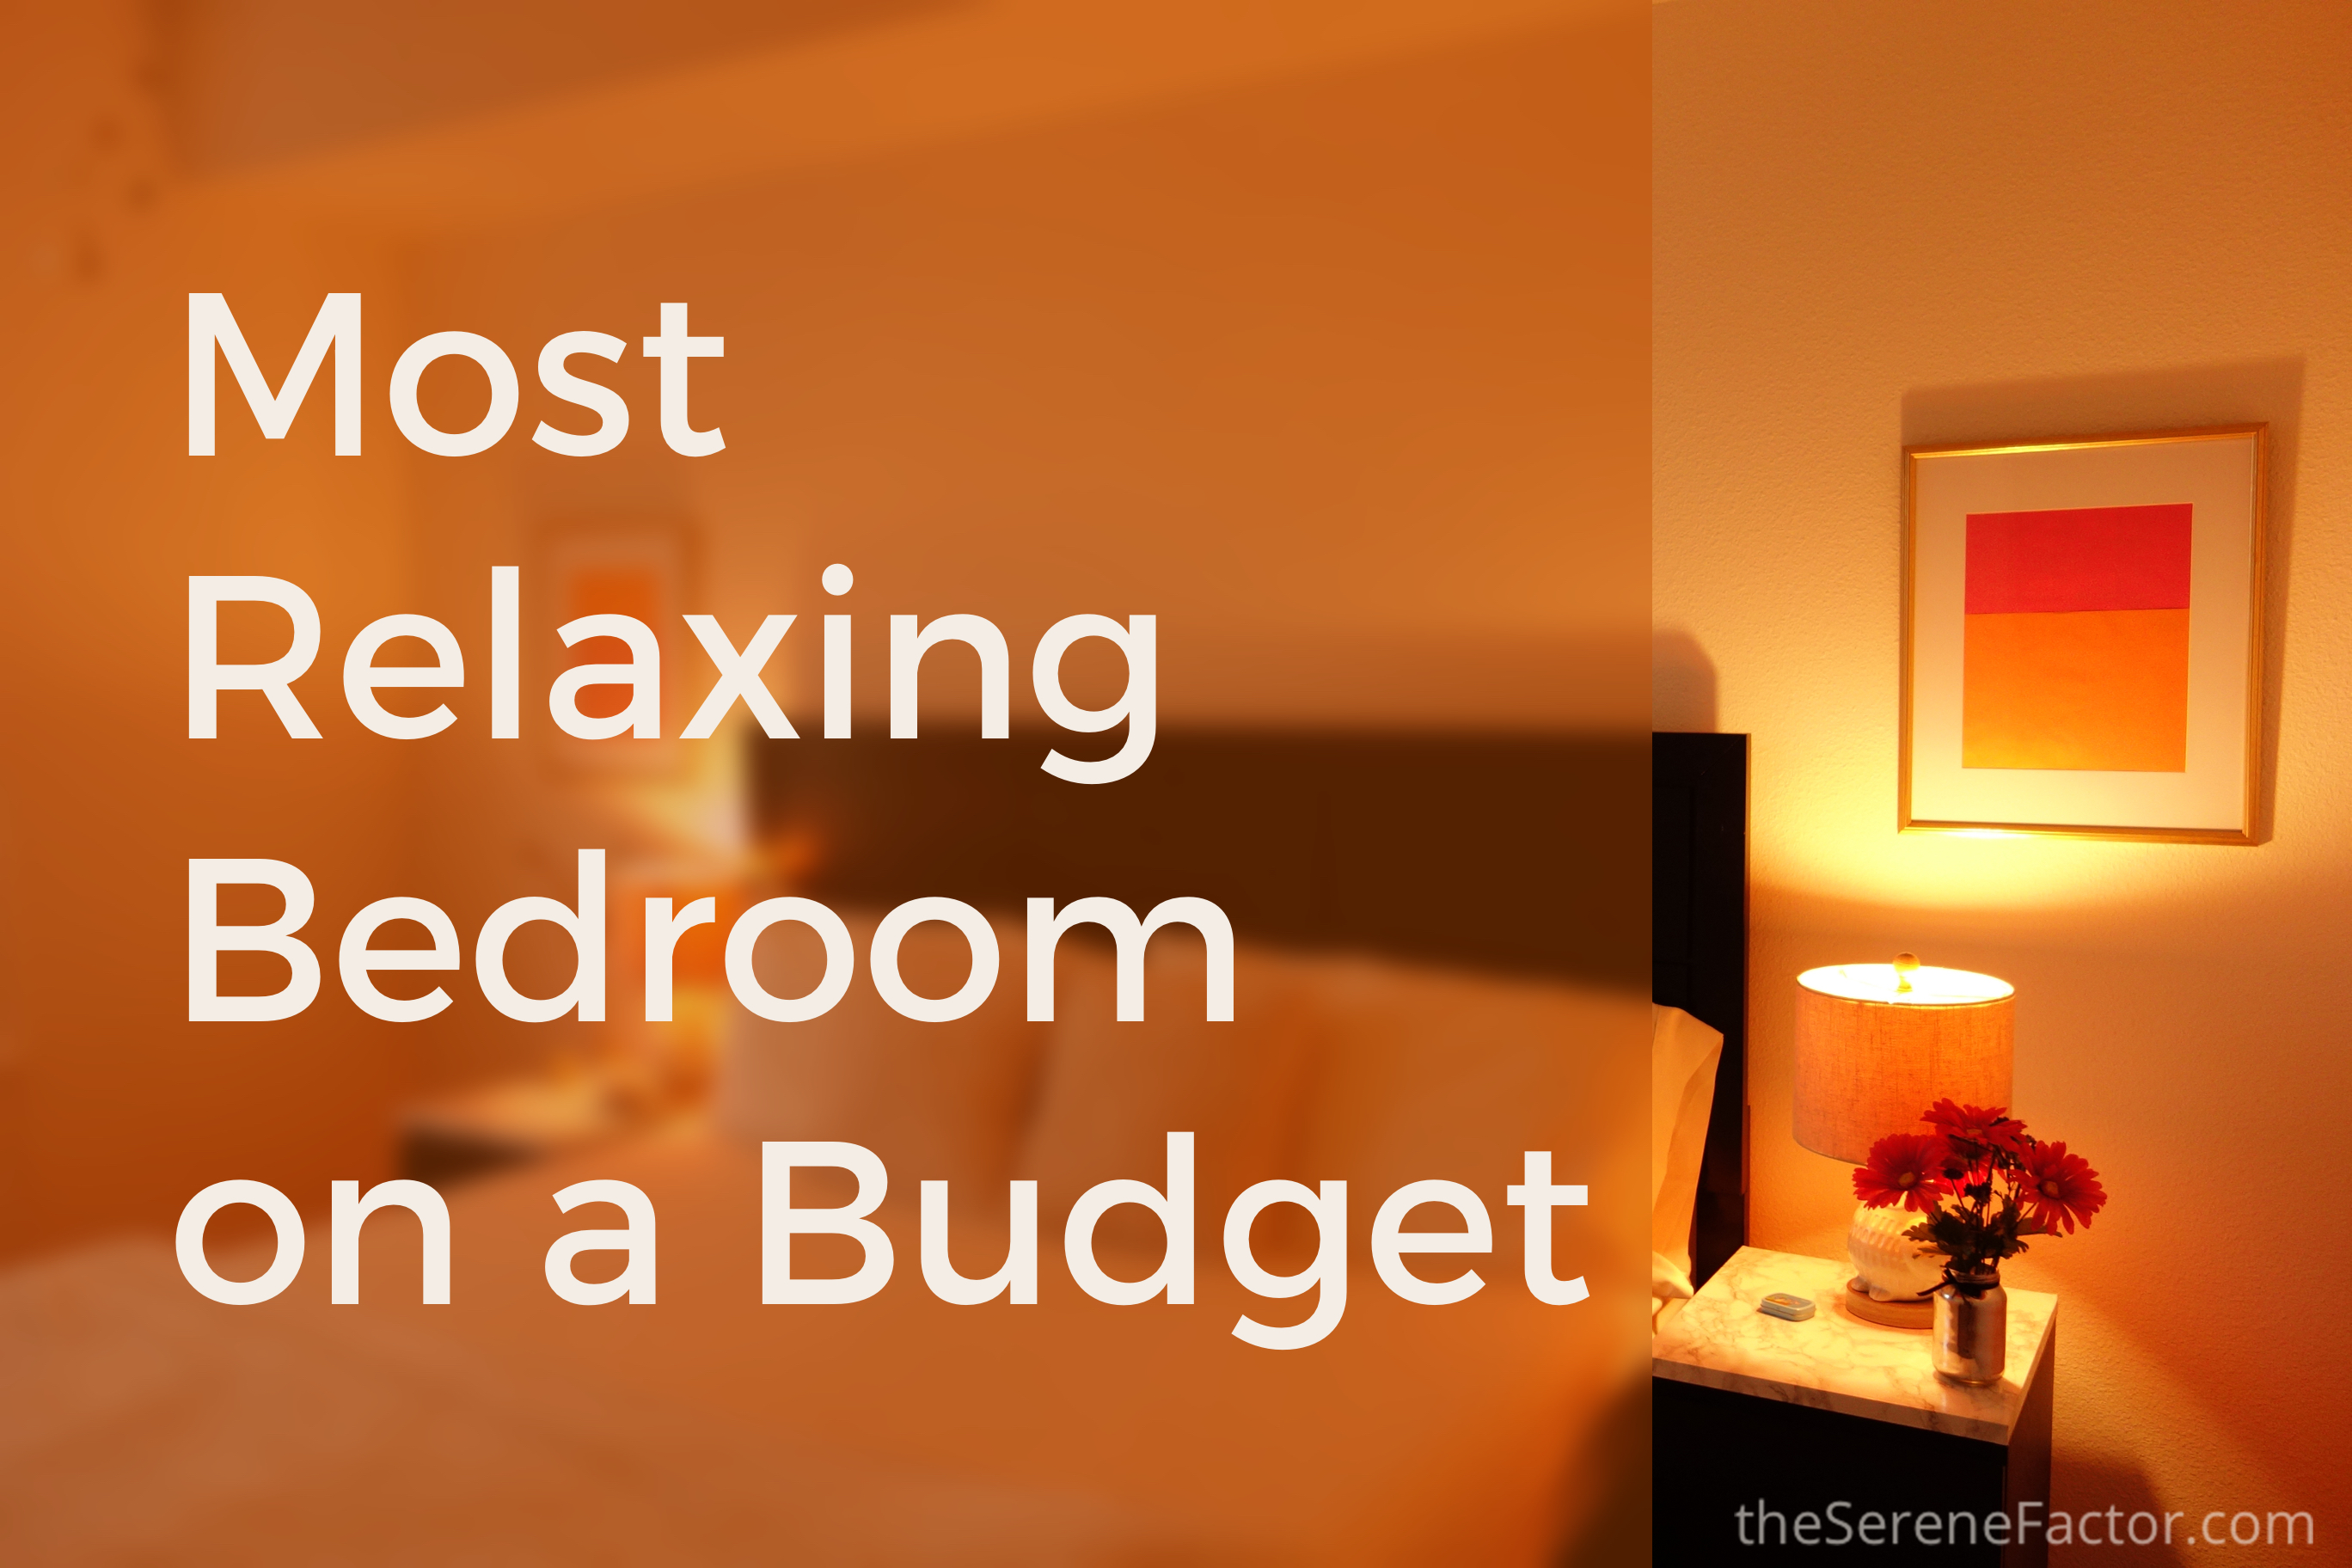 How To Create the Most Relaxing Bedroom on a Budget